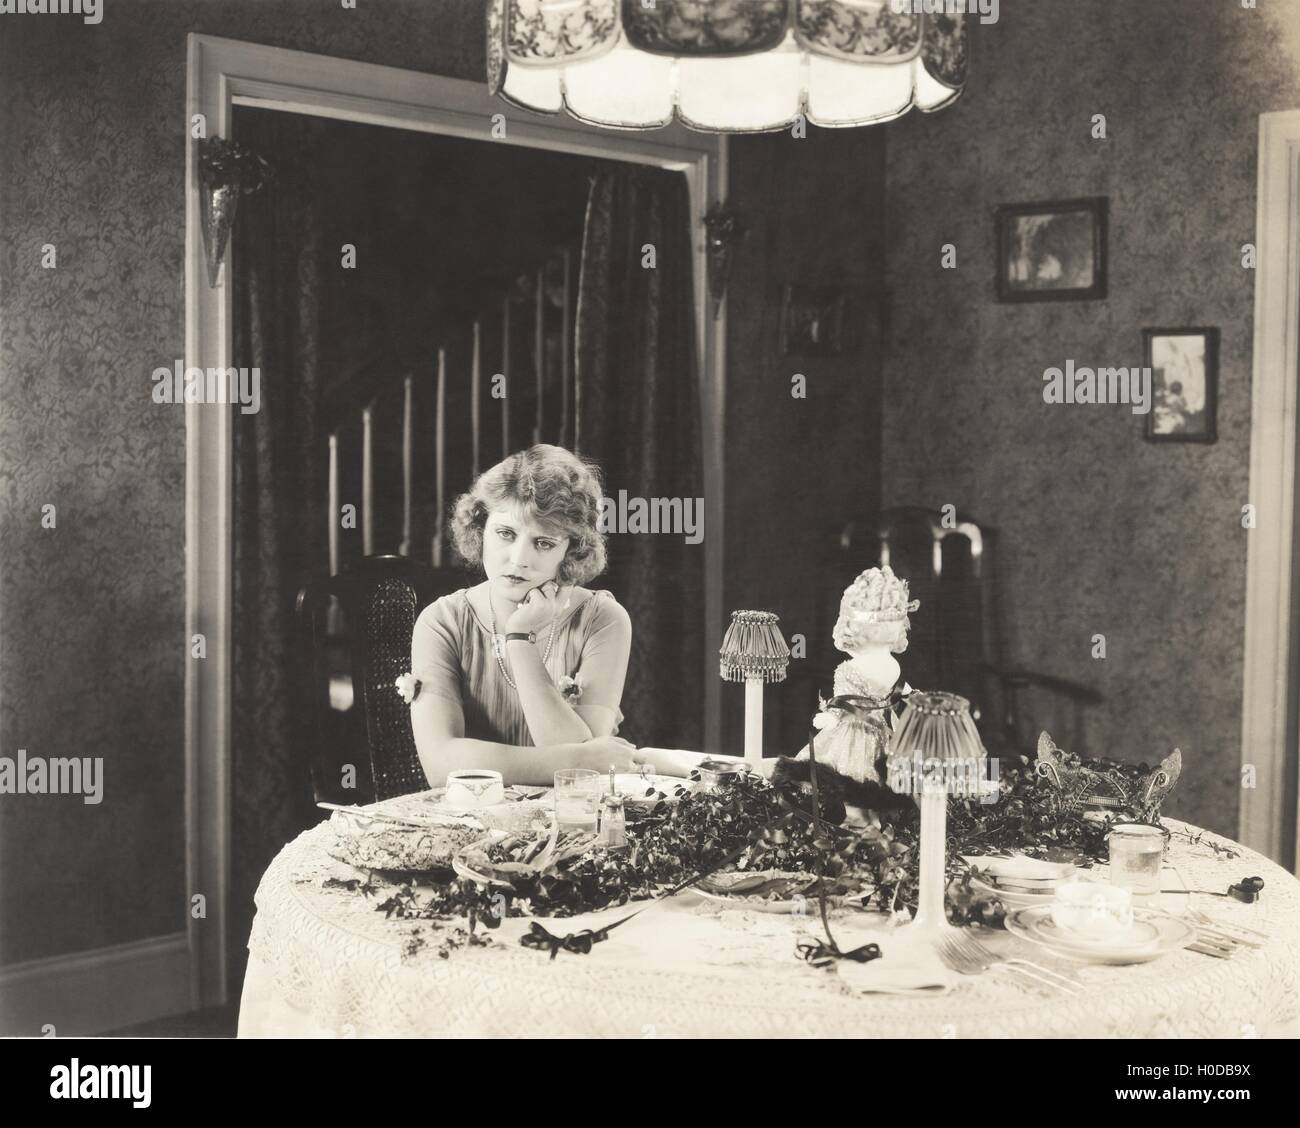 Dining alone - Stock Image